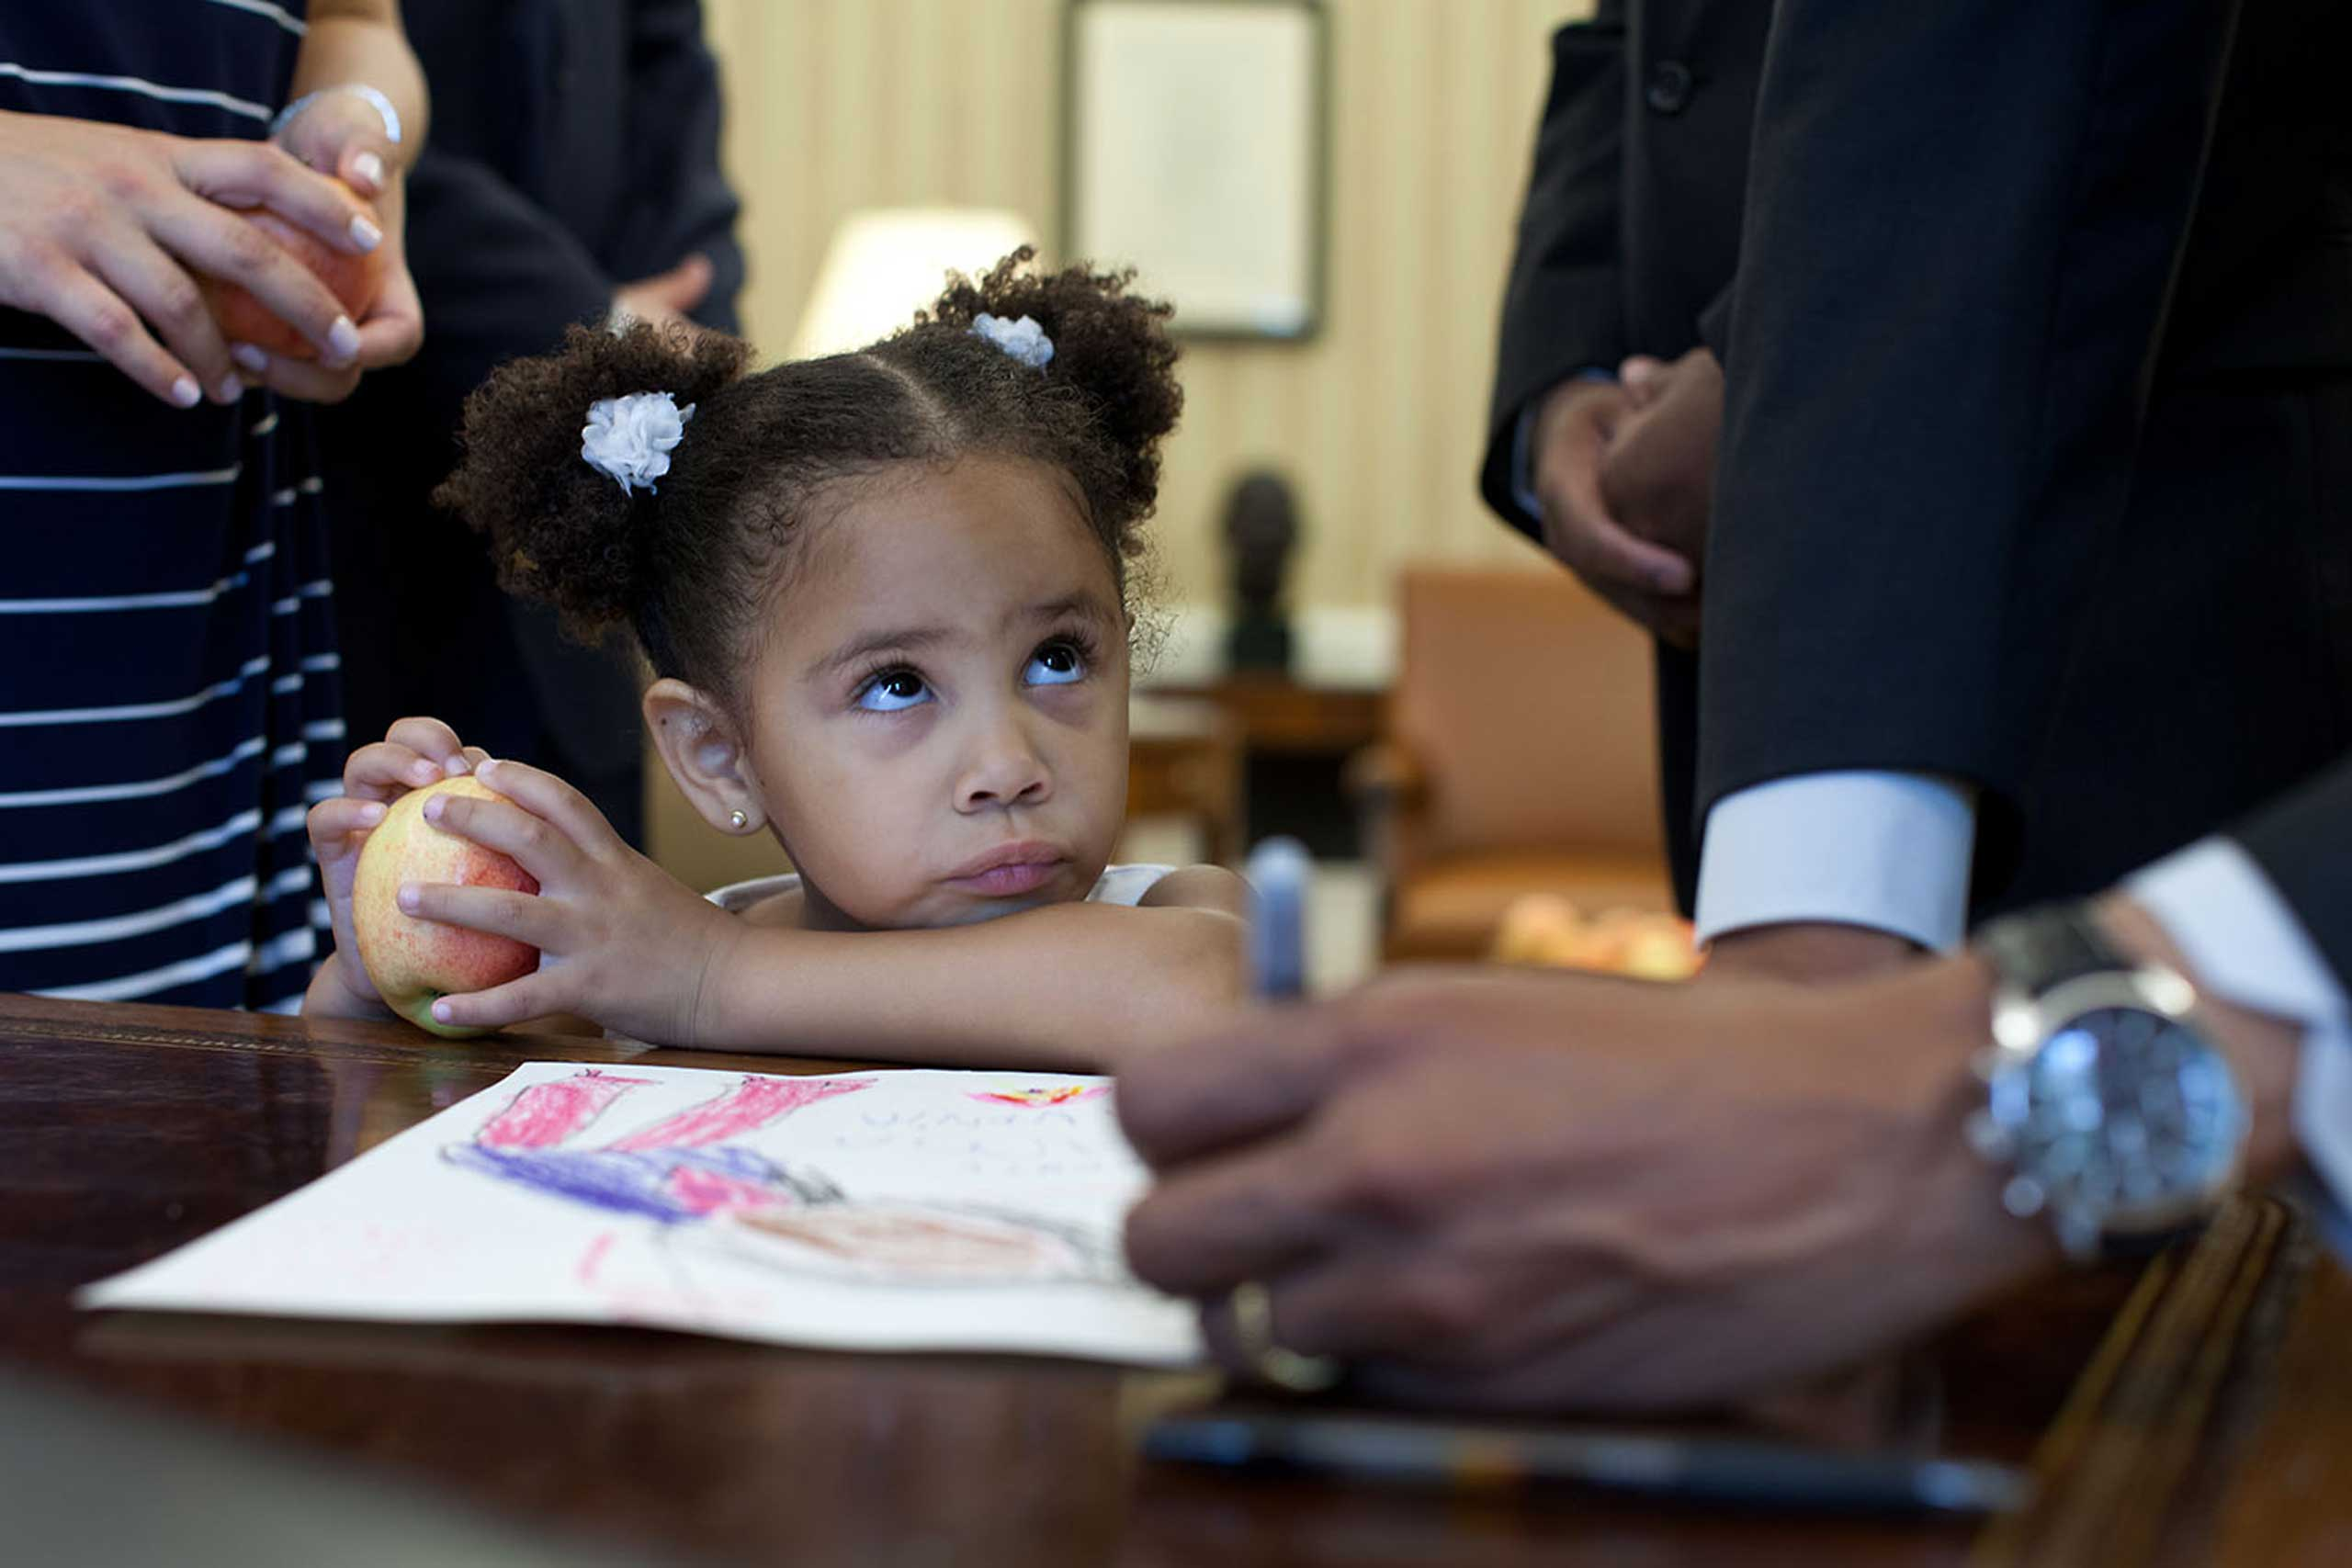 Luz Graham-Urquilla, 4, watches President Obama as he signs her drawing at the Resolute Desk in the Oval Office, May 25, 2012.